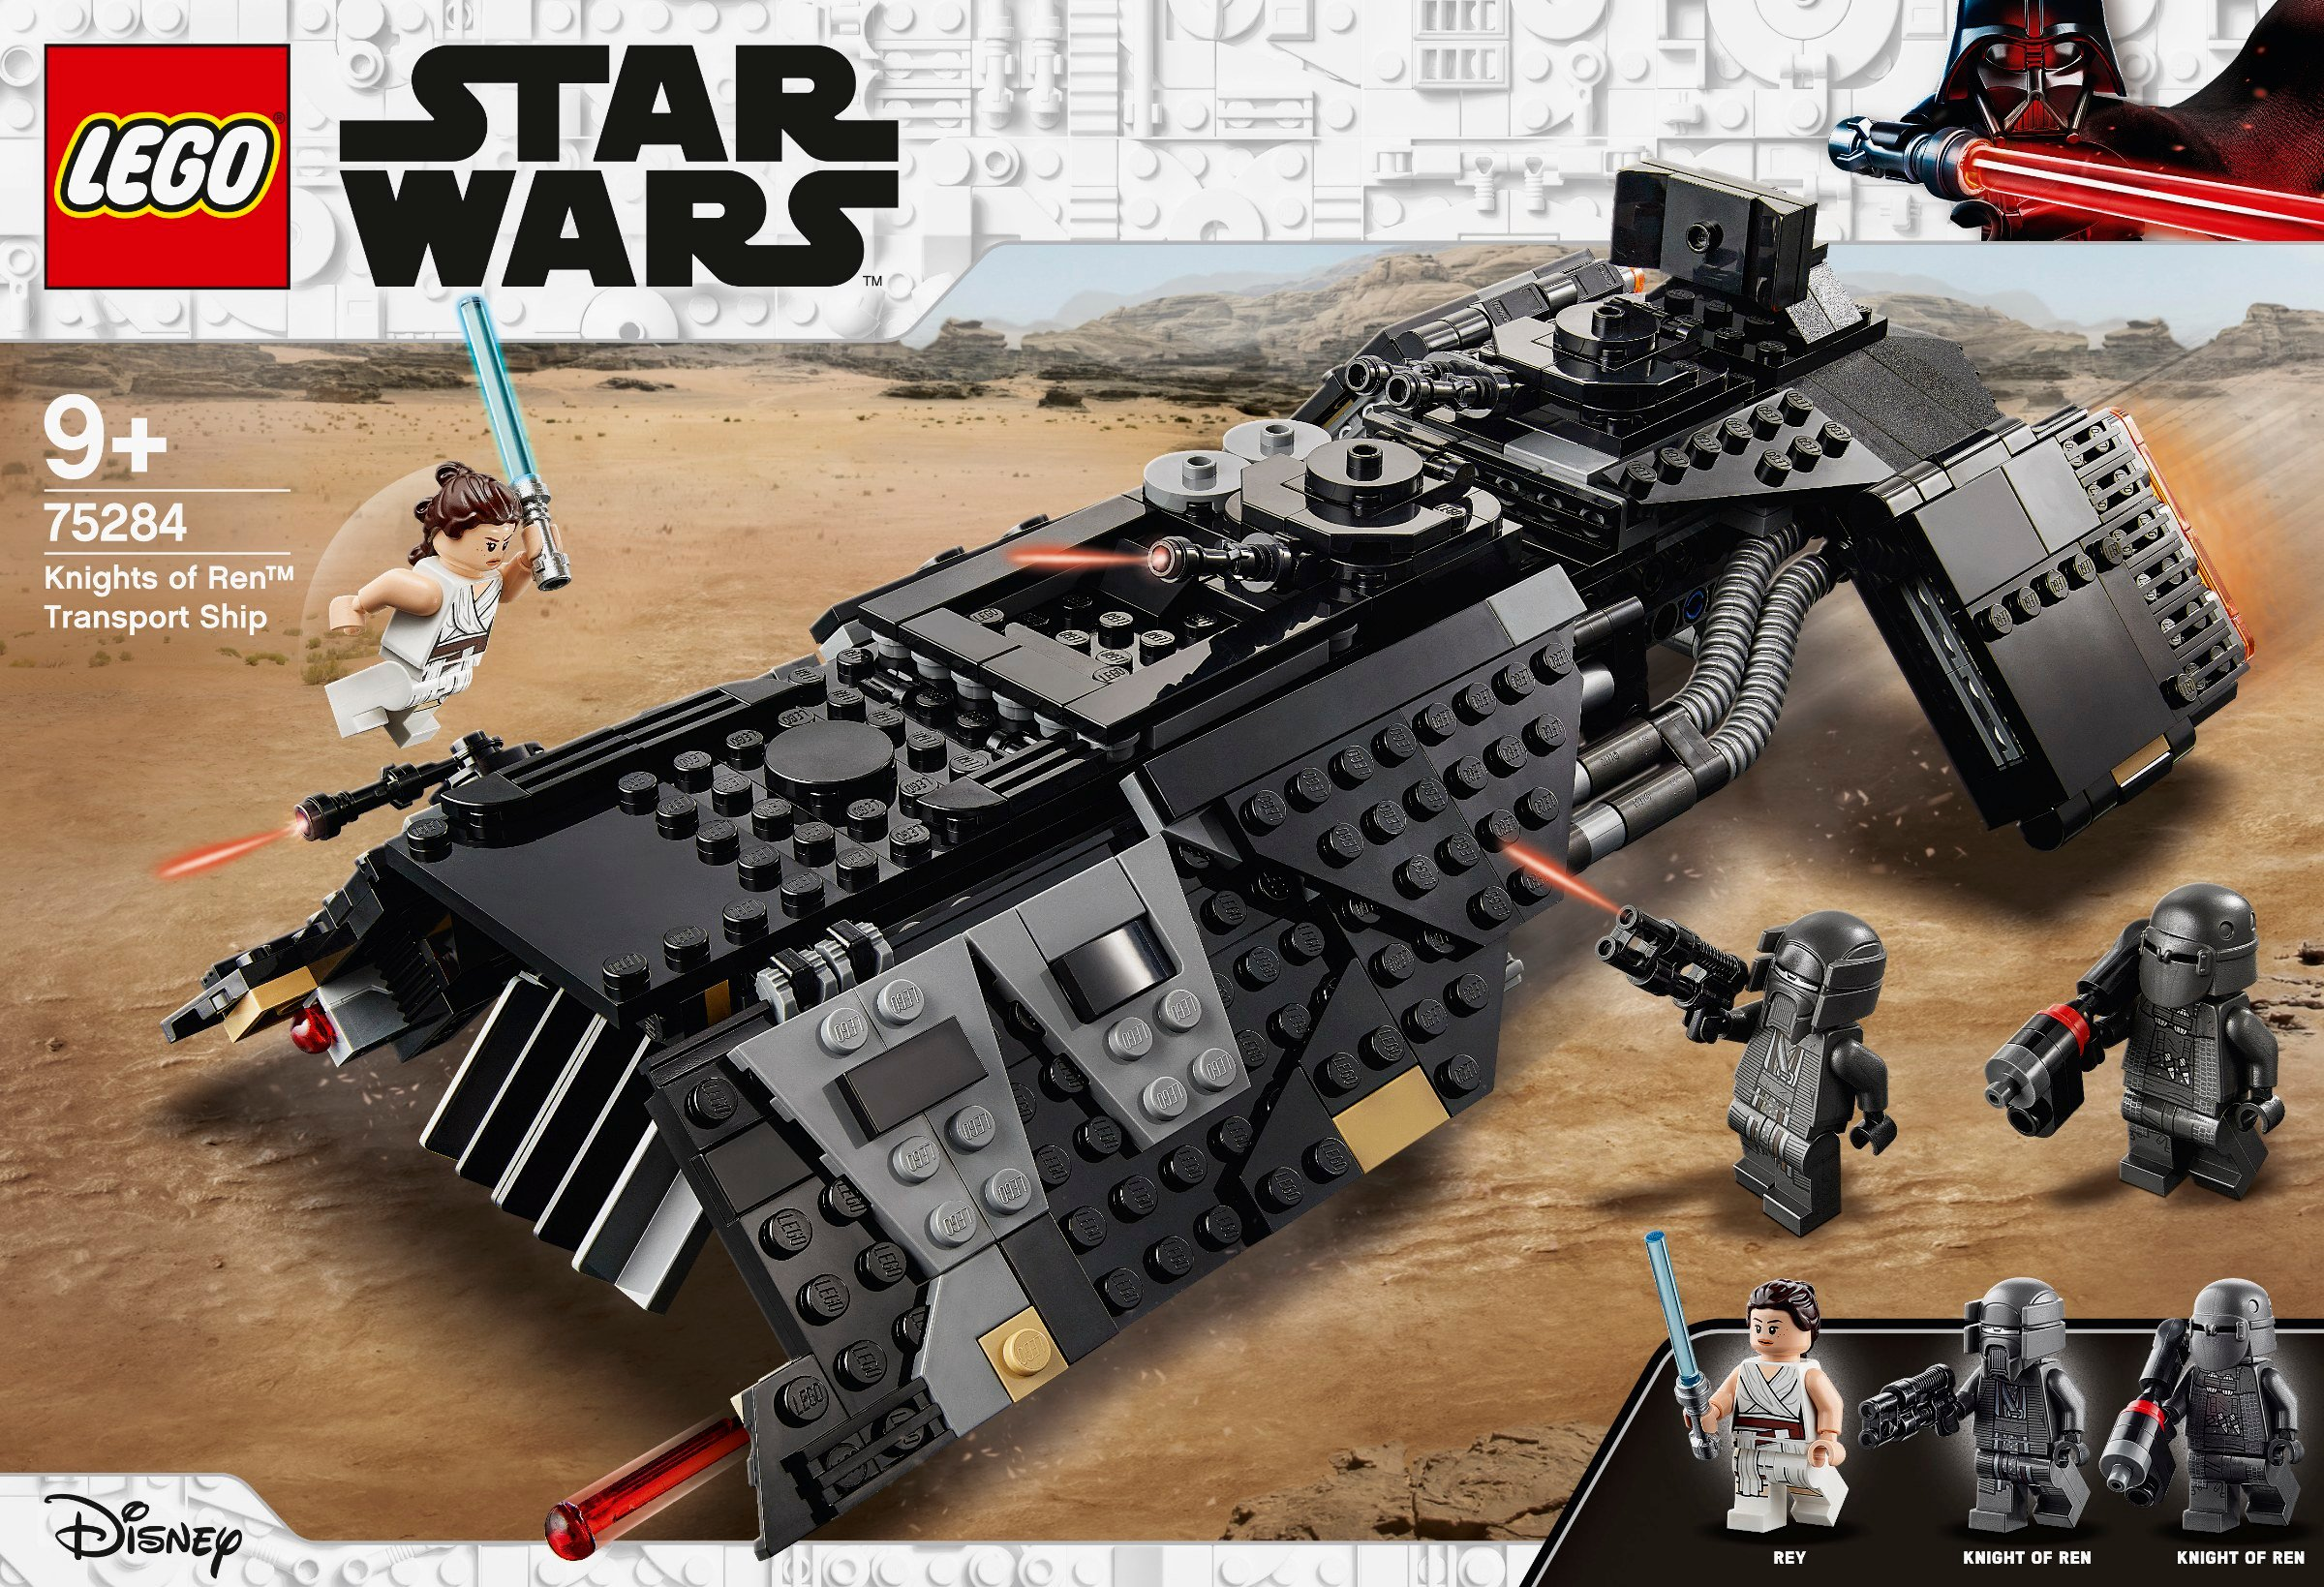 LEGO Star Wars - Knights of Ren Transport Ship (75284)